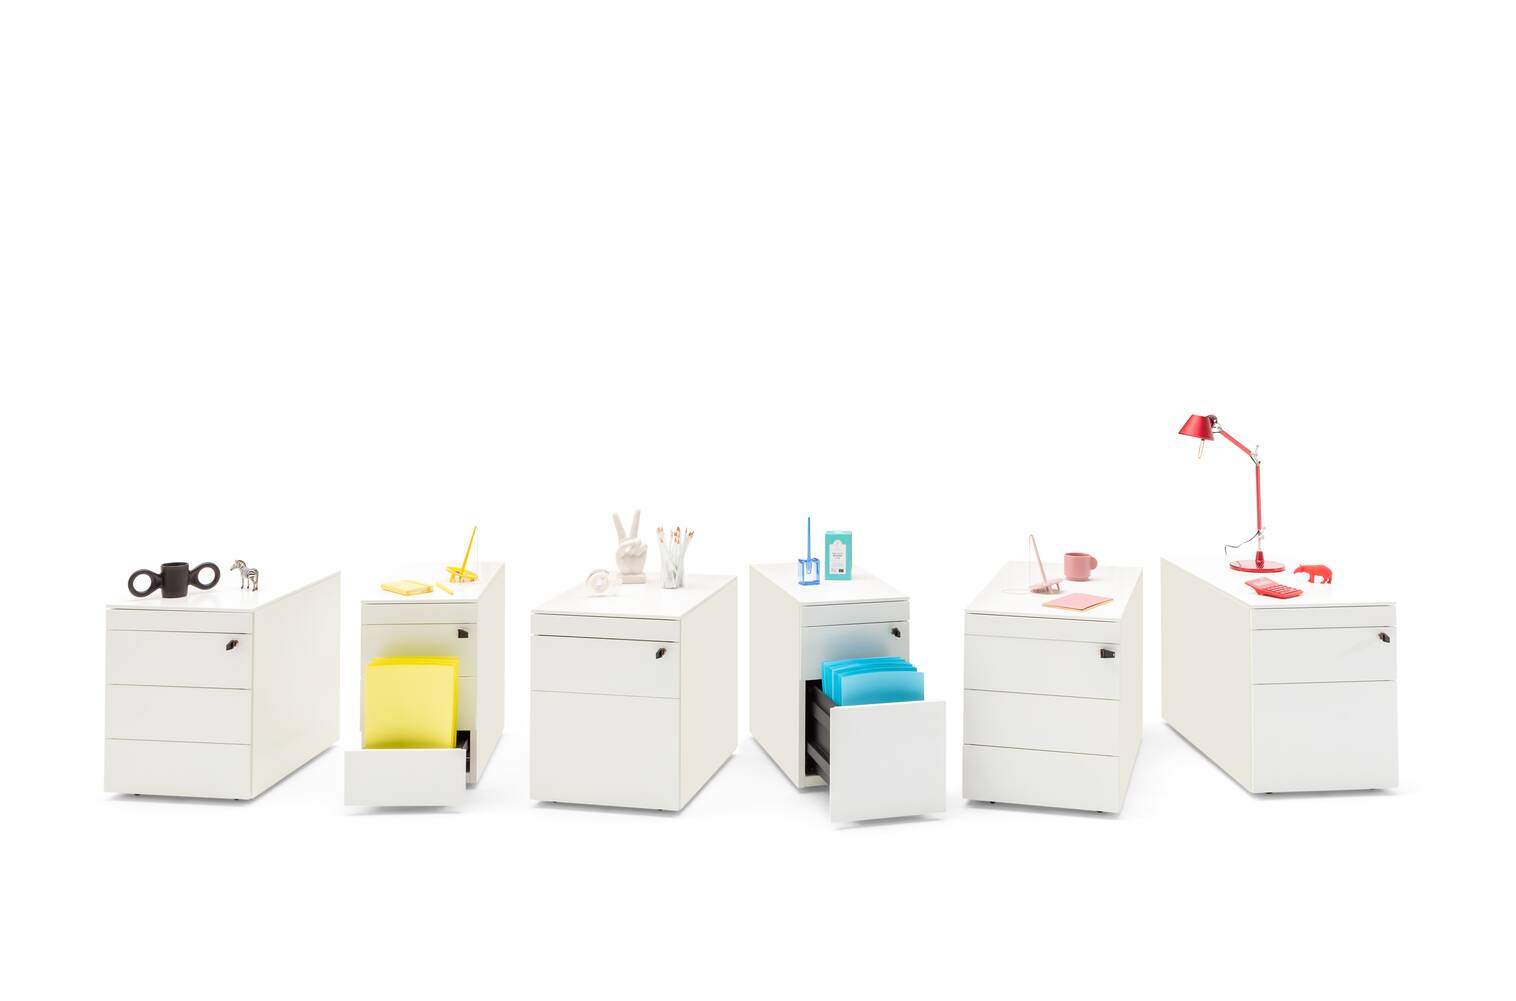 Royal Ahrend Pedestals in white with coloured office supplies front view